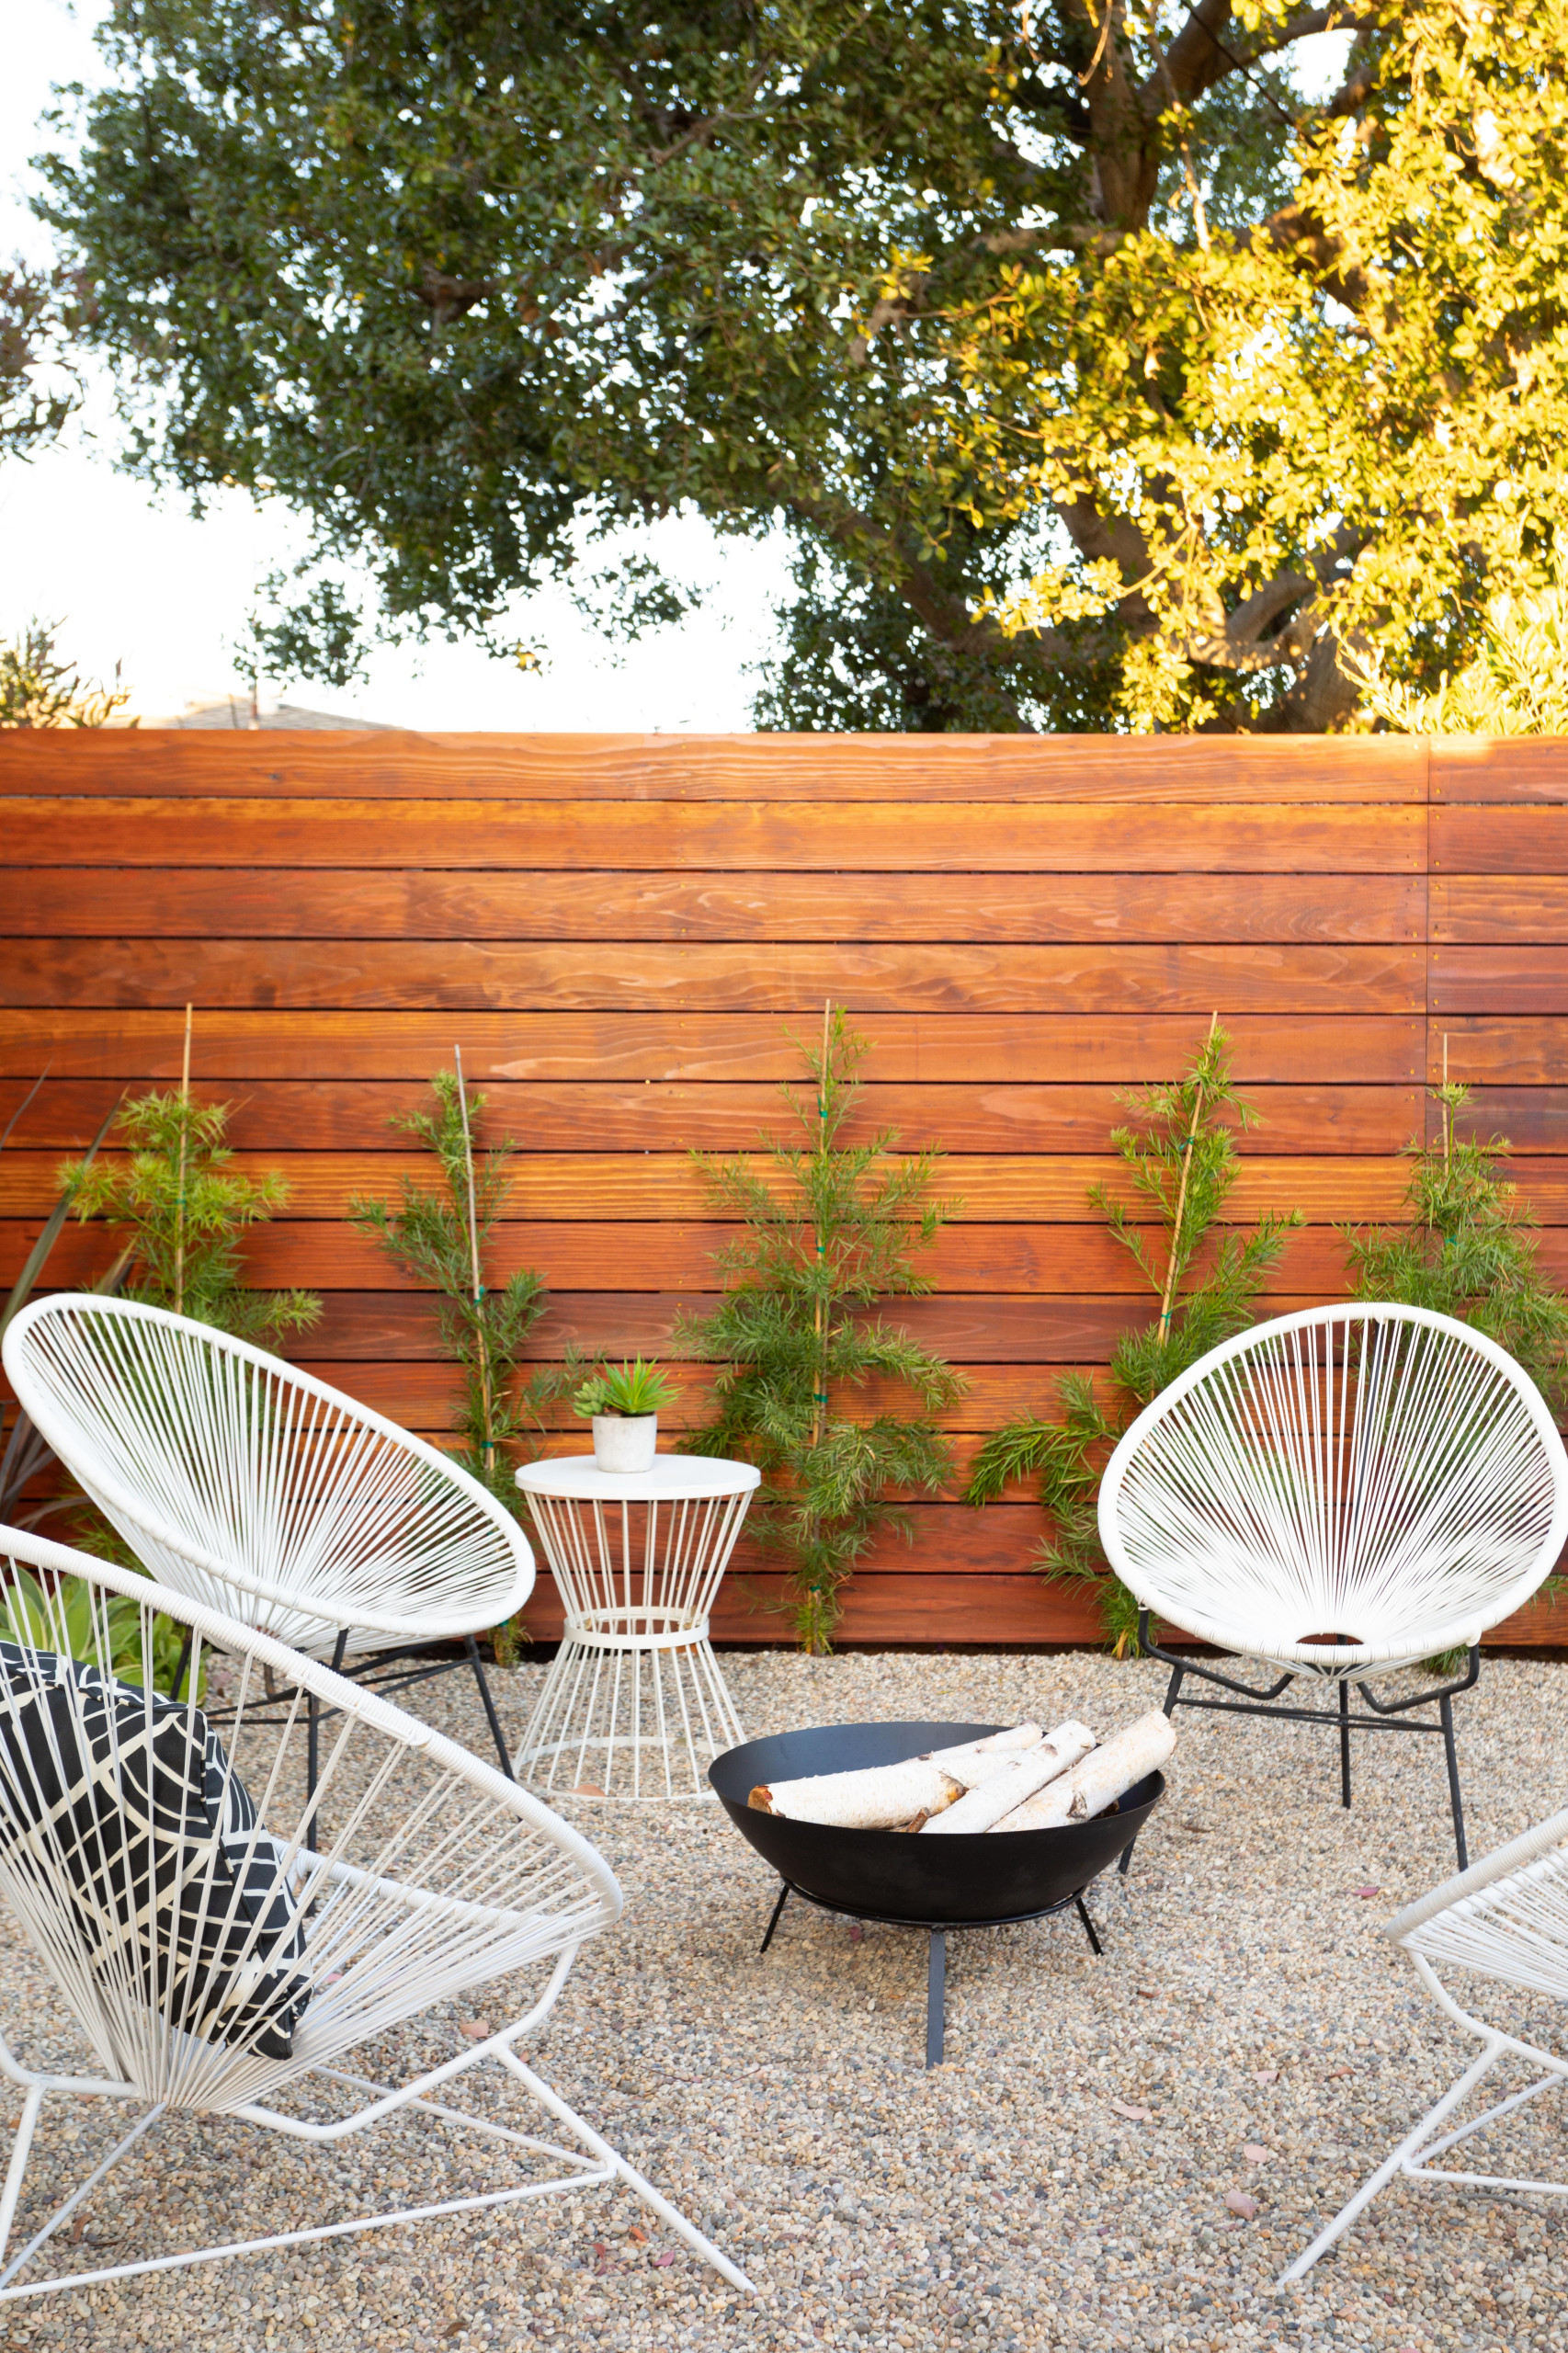 20 Dazzling Mid-Century Modern Patio Ideas You Won't Be Able To Resist